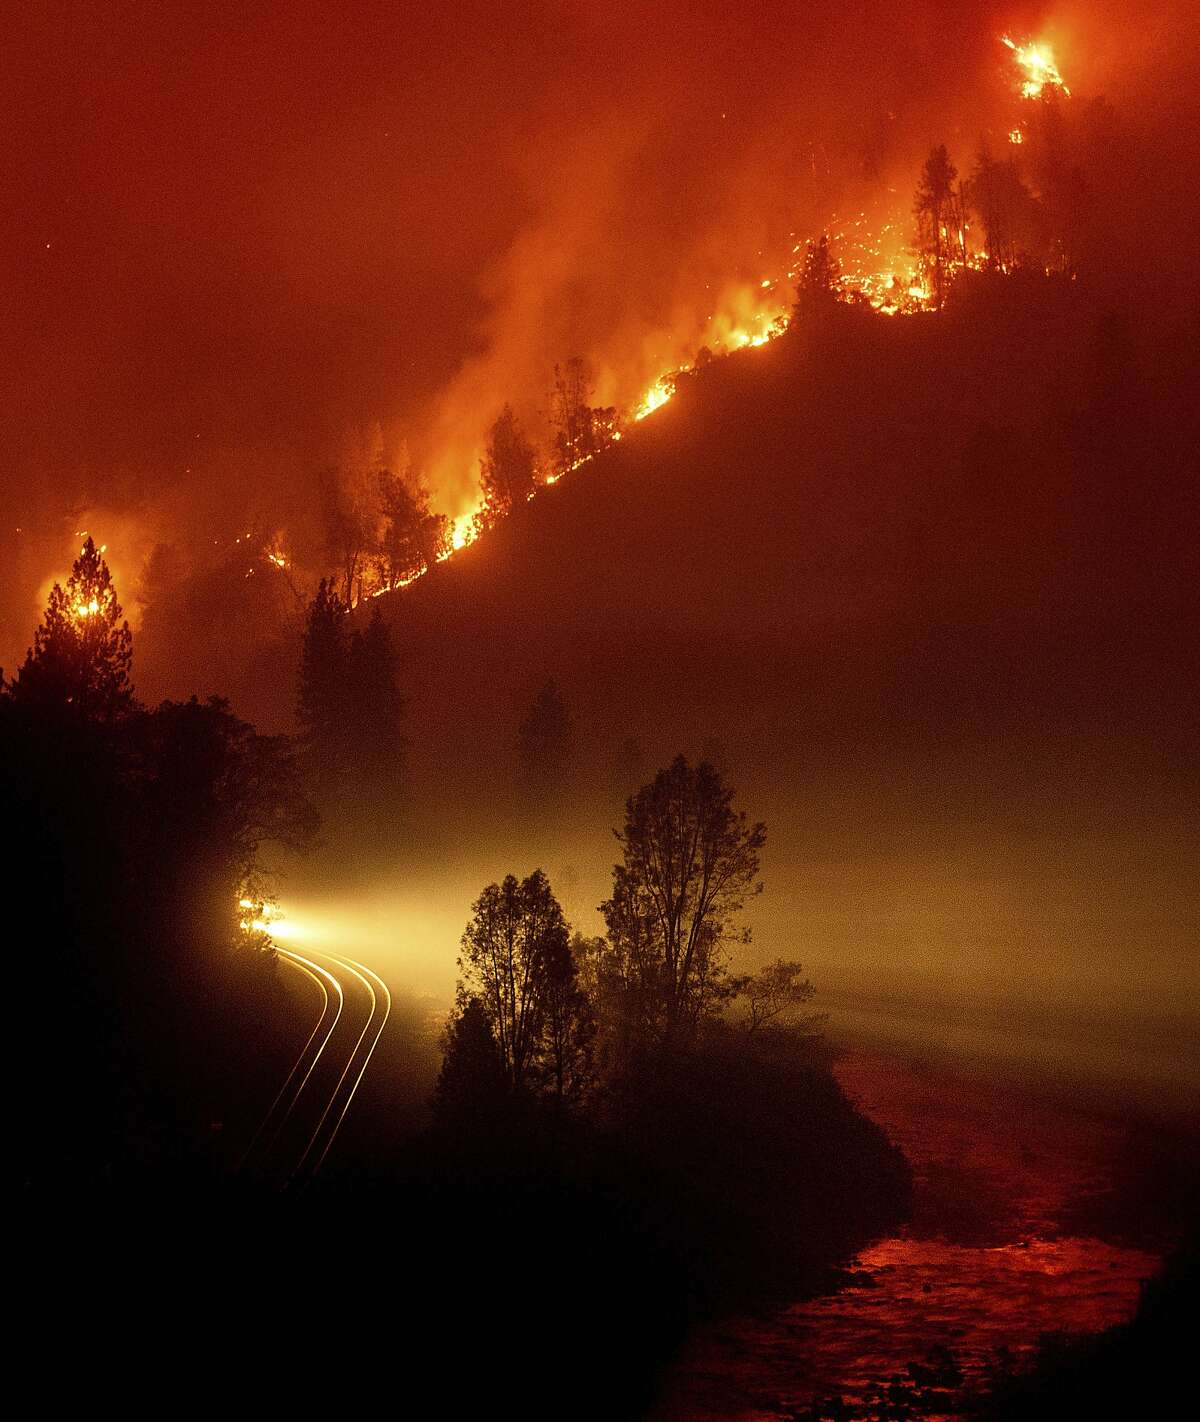 The Delta Fire burns in the Shasta-Trinity National Forest, Calif., on Thursday, Sept. 6, 2018. The wildfire closed both directions of Interstate 5 leaving trucks parked on the shoulder for more than two miles waiting to pass through. (AP Photo/Noah Berger)